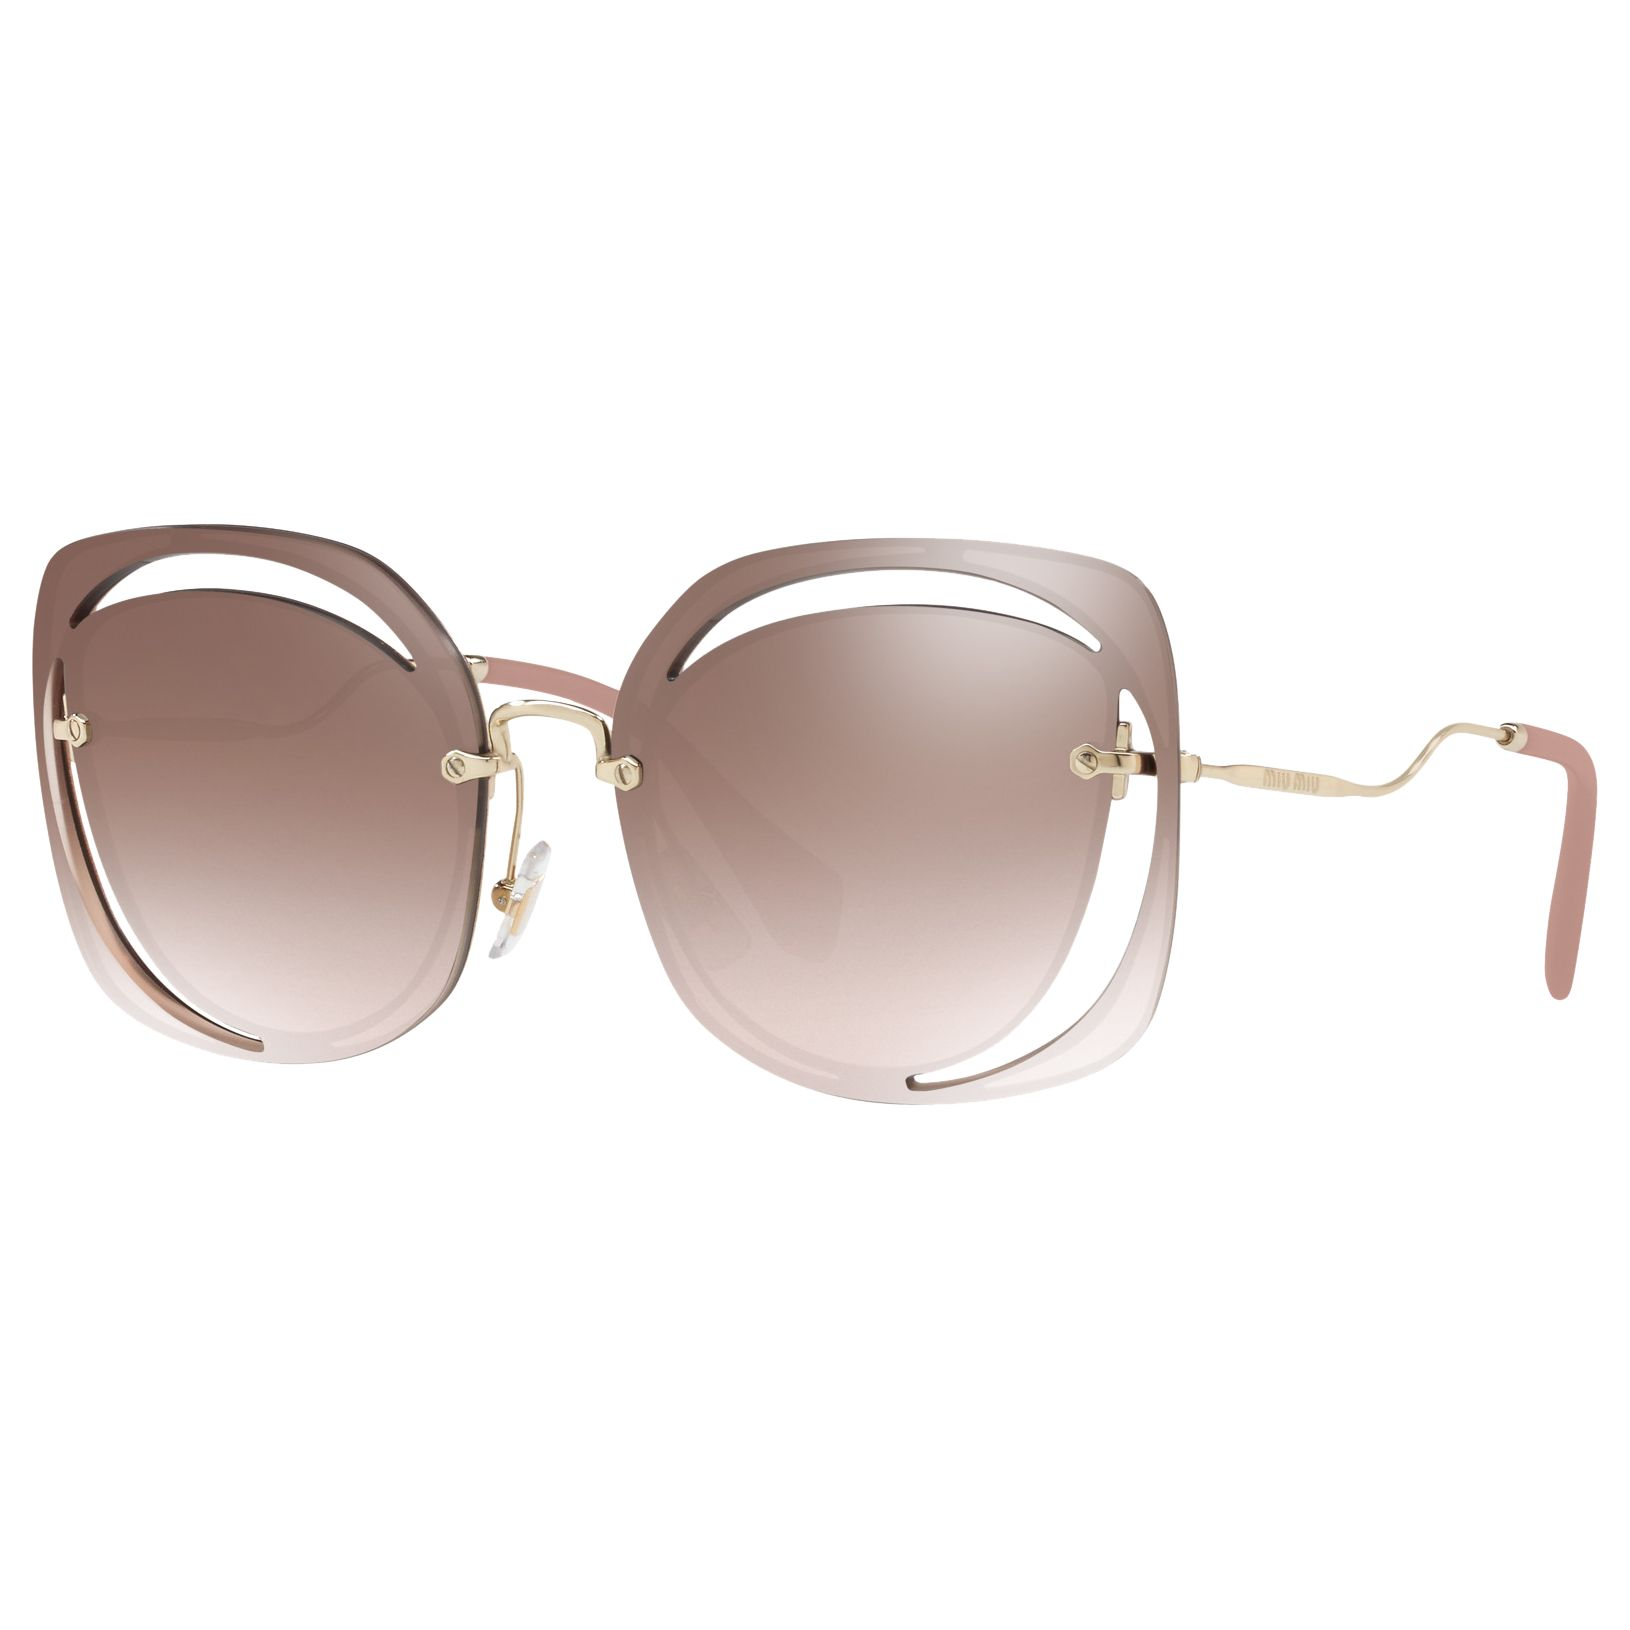 Miu Miu Miu Miu MU 54SS Square Sunglasses, Brown/Gold